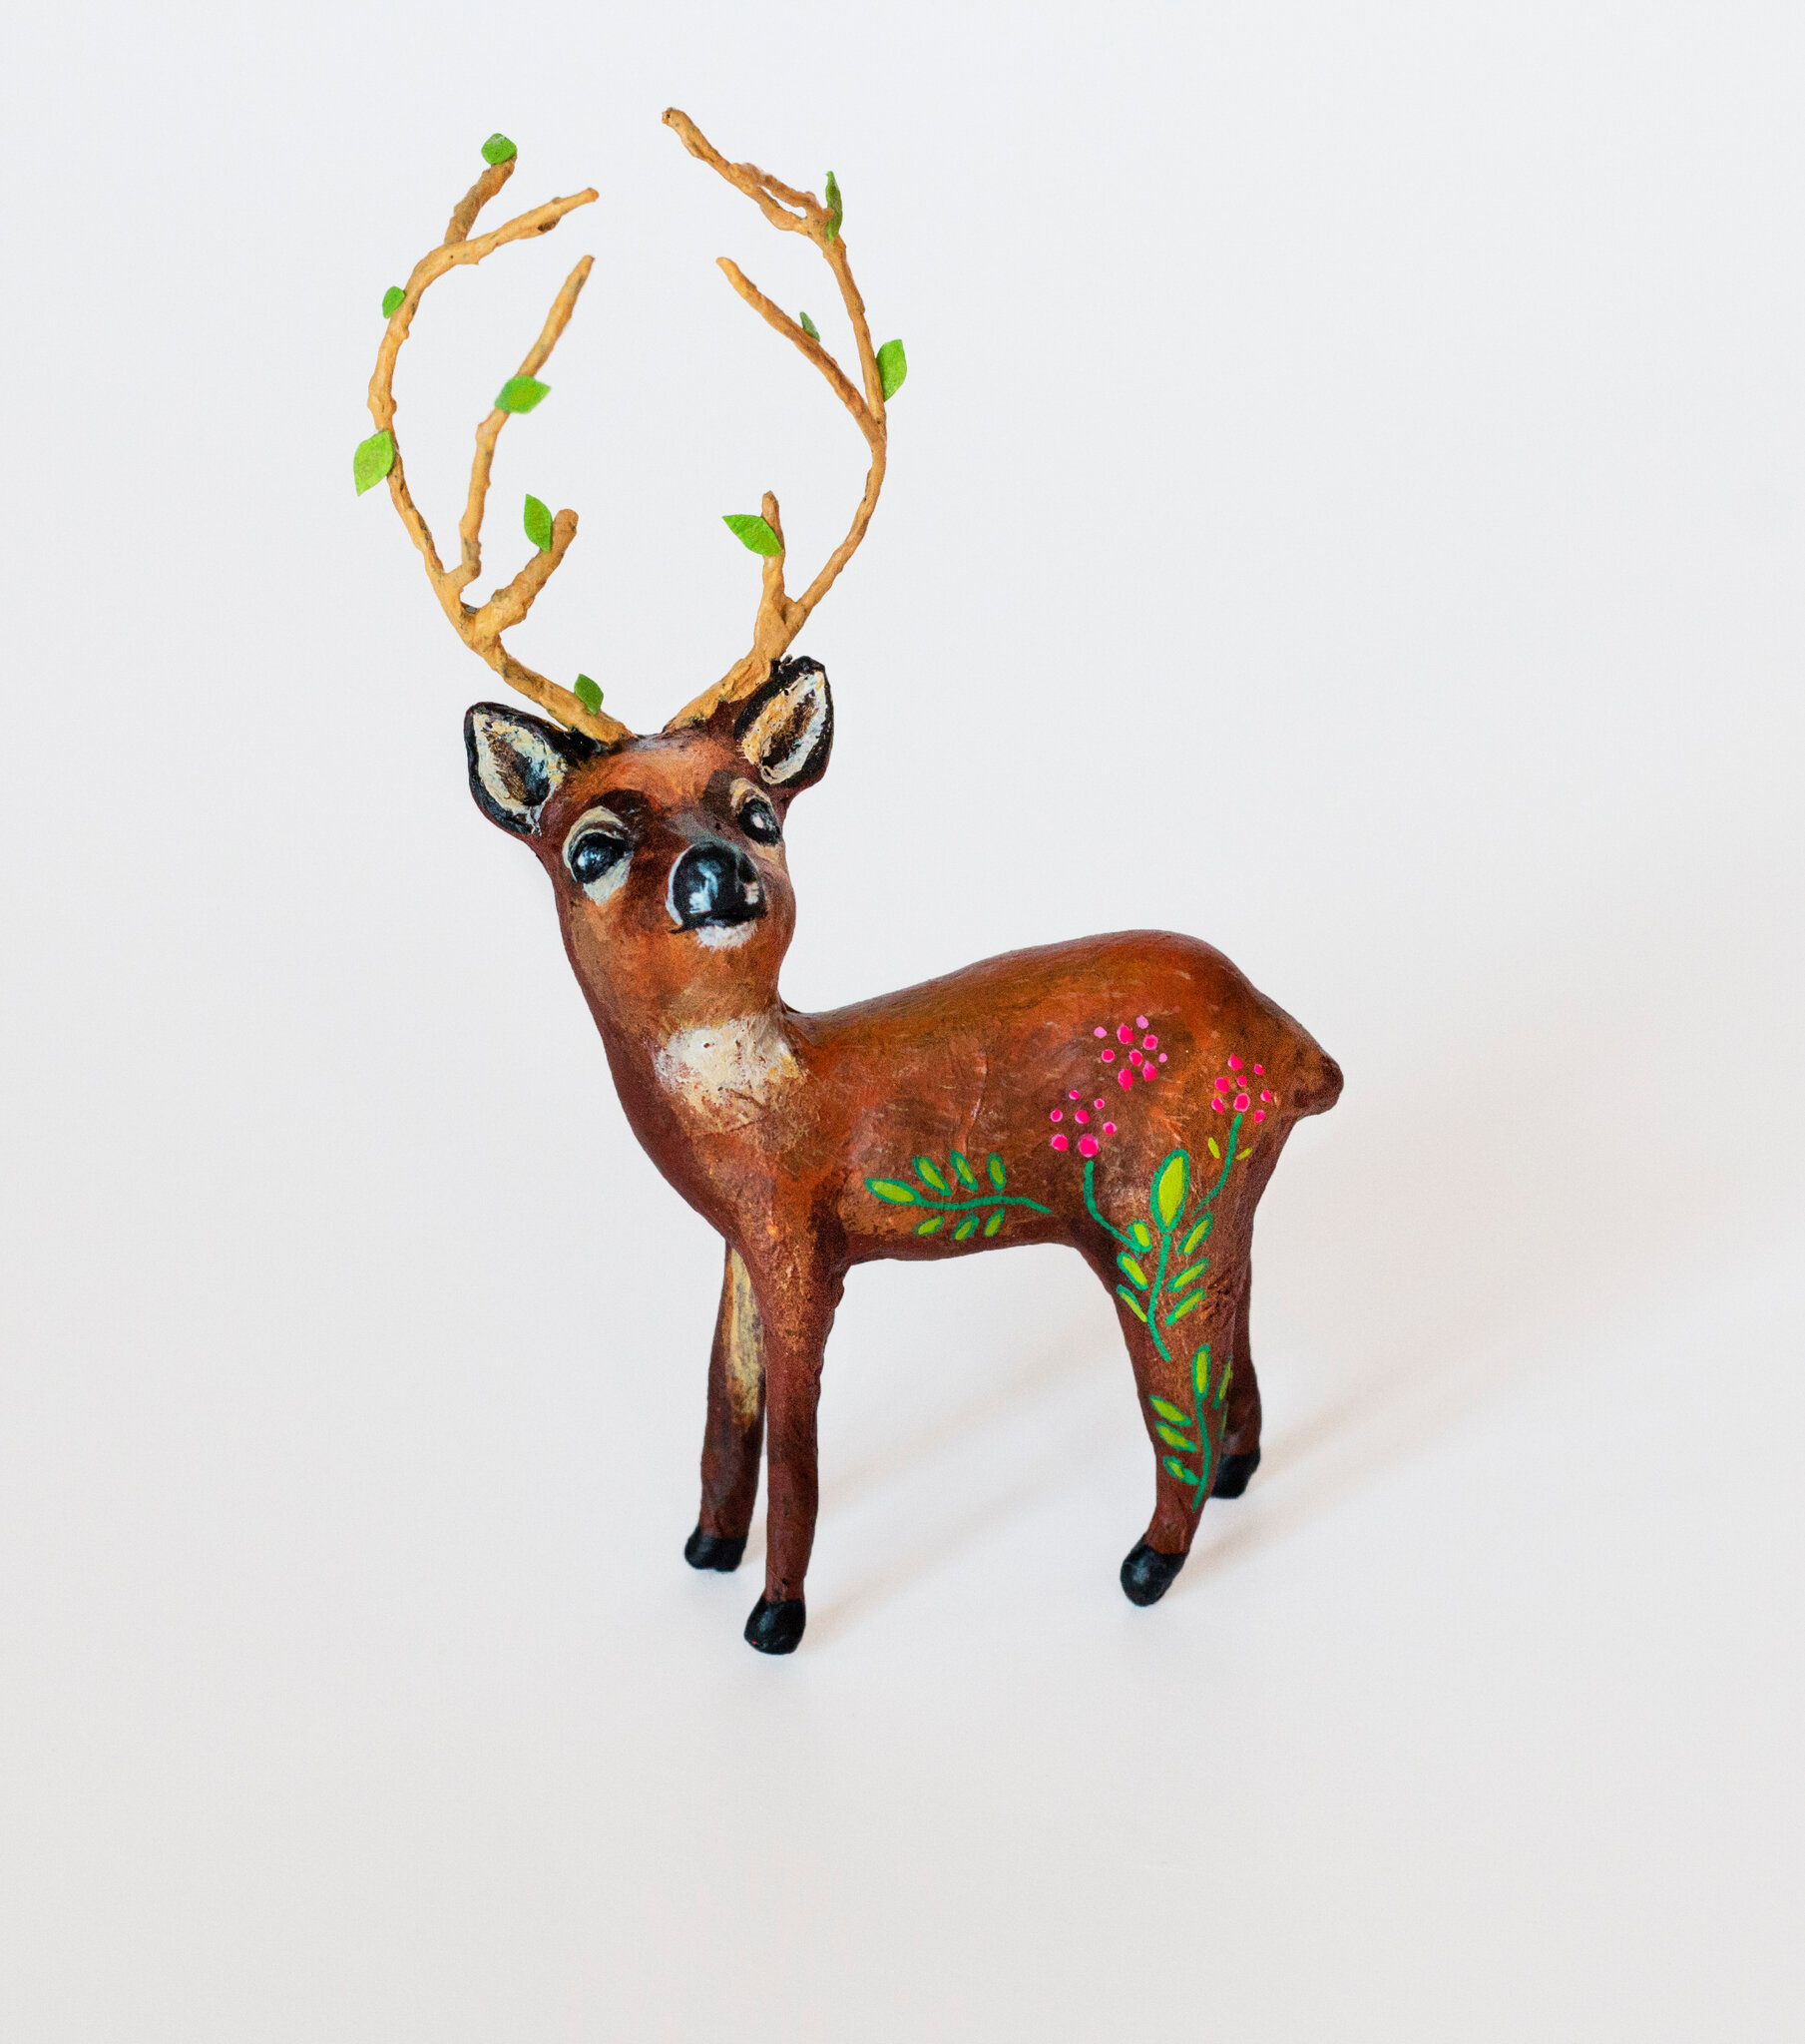 Deer3_Papiermache_Sculpture_AlinePallaro_2018 copie